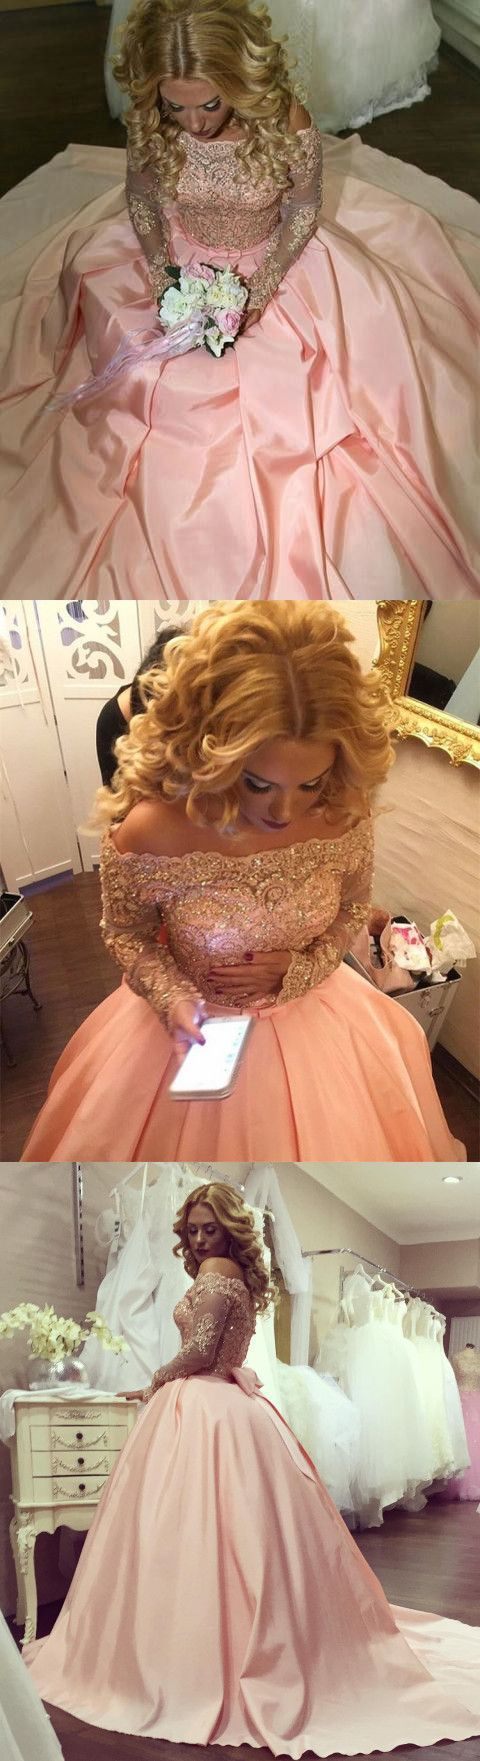 Gold Lace Long Sleeves Off Shoulder Ball Gowns Satin Blush Wedding Dresses 2020 Bow Back Wedding Gowns For Bride M8809